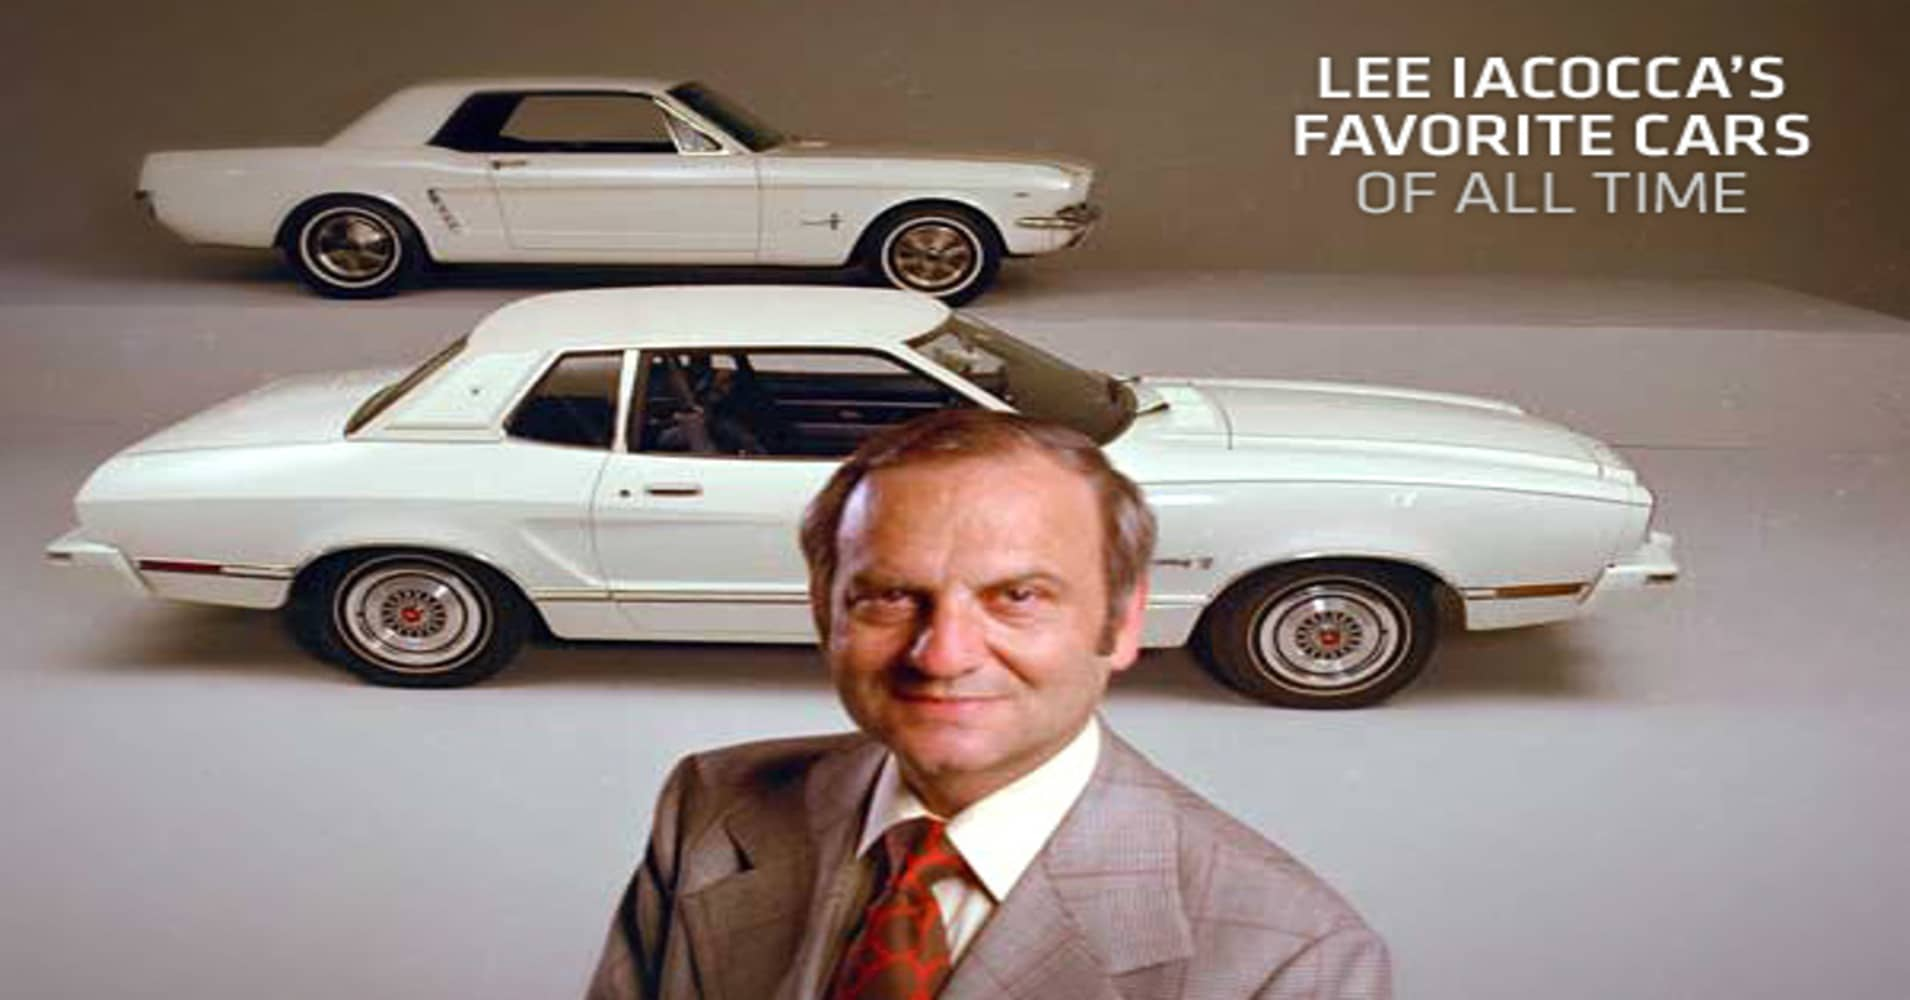 Lee Iacocca's Favorite Cars of All Time